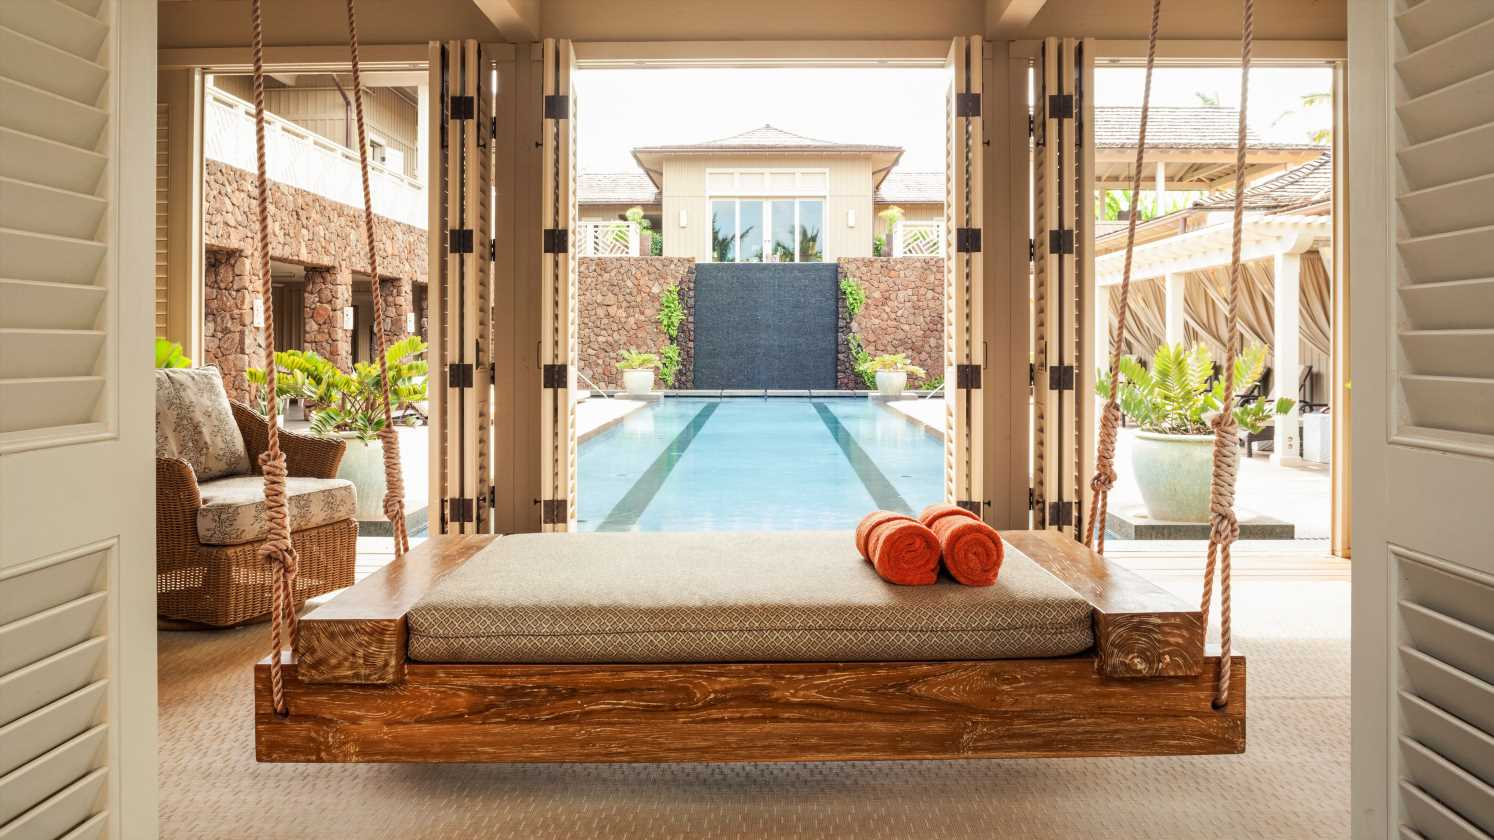 Relaxation on the road: 8 luxury hotels with world-class spas